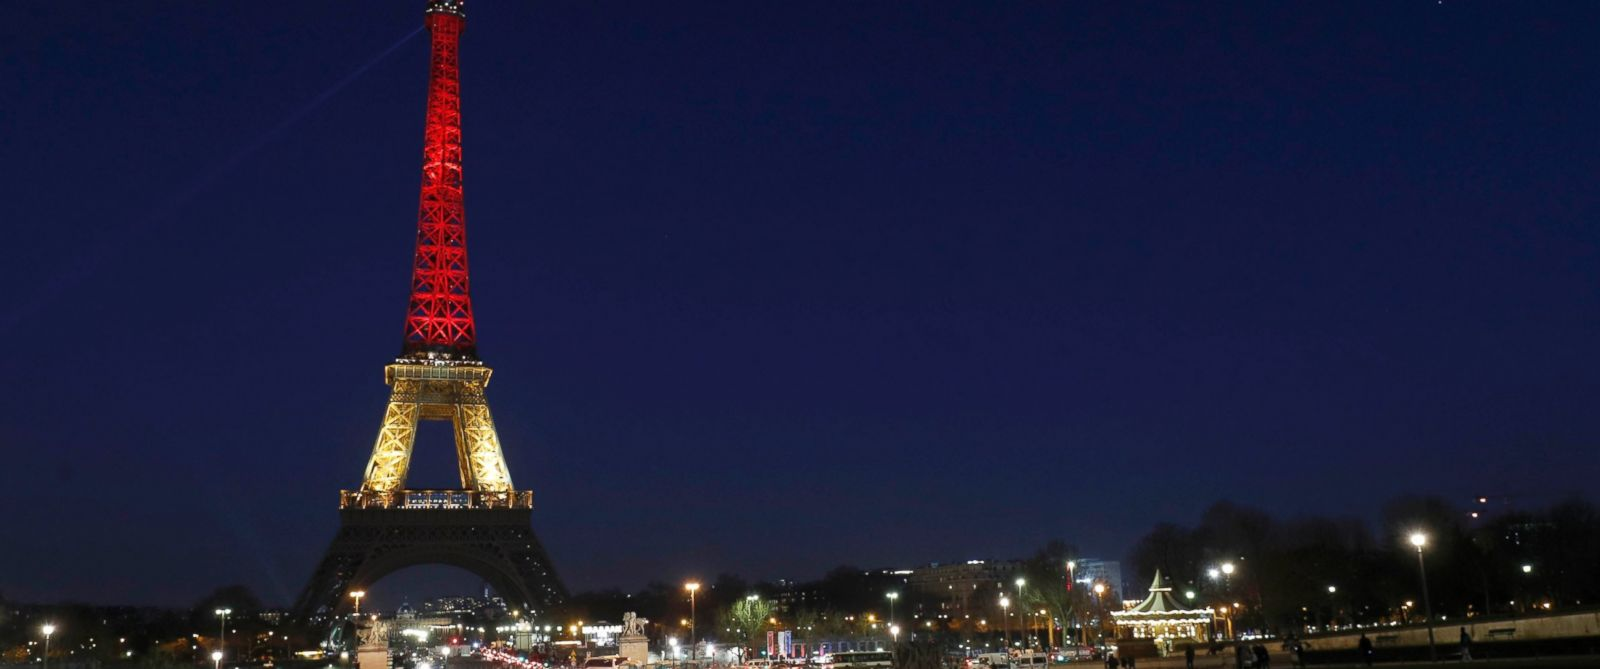 PHOTO: The Eiffel Tower is seen with the colors of the Belgian flag in tribute to the victims of todays Brussels bomb attacks, in Paris, France, March 22, 2016.